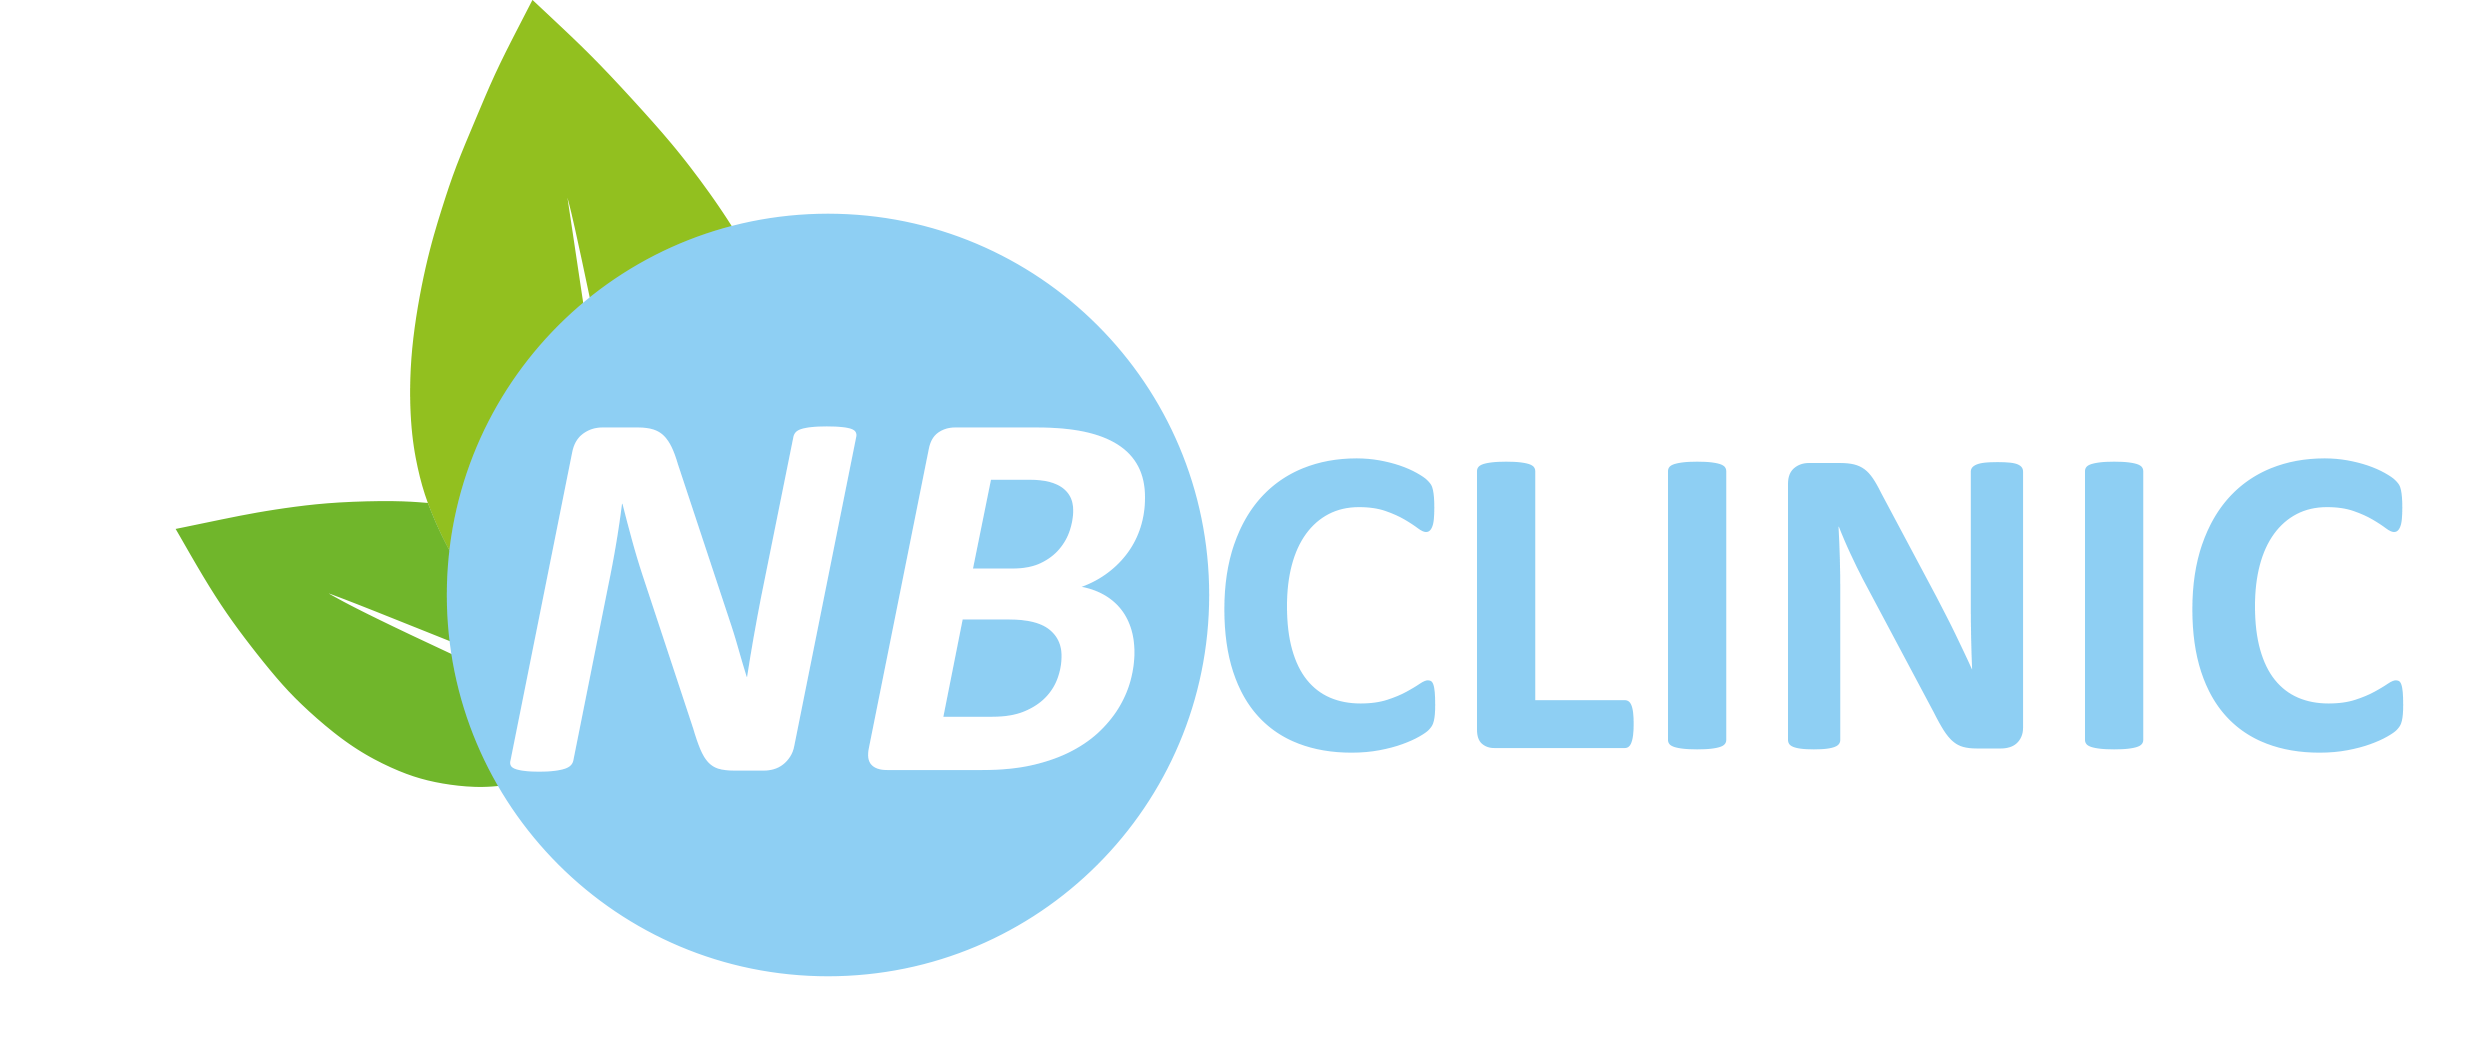 NbClinic